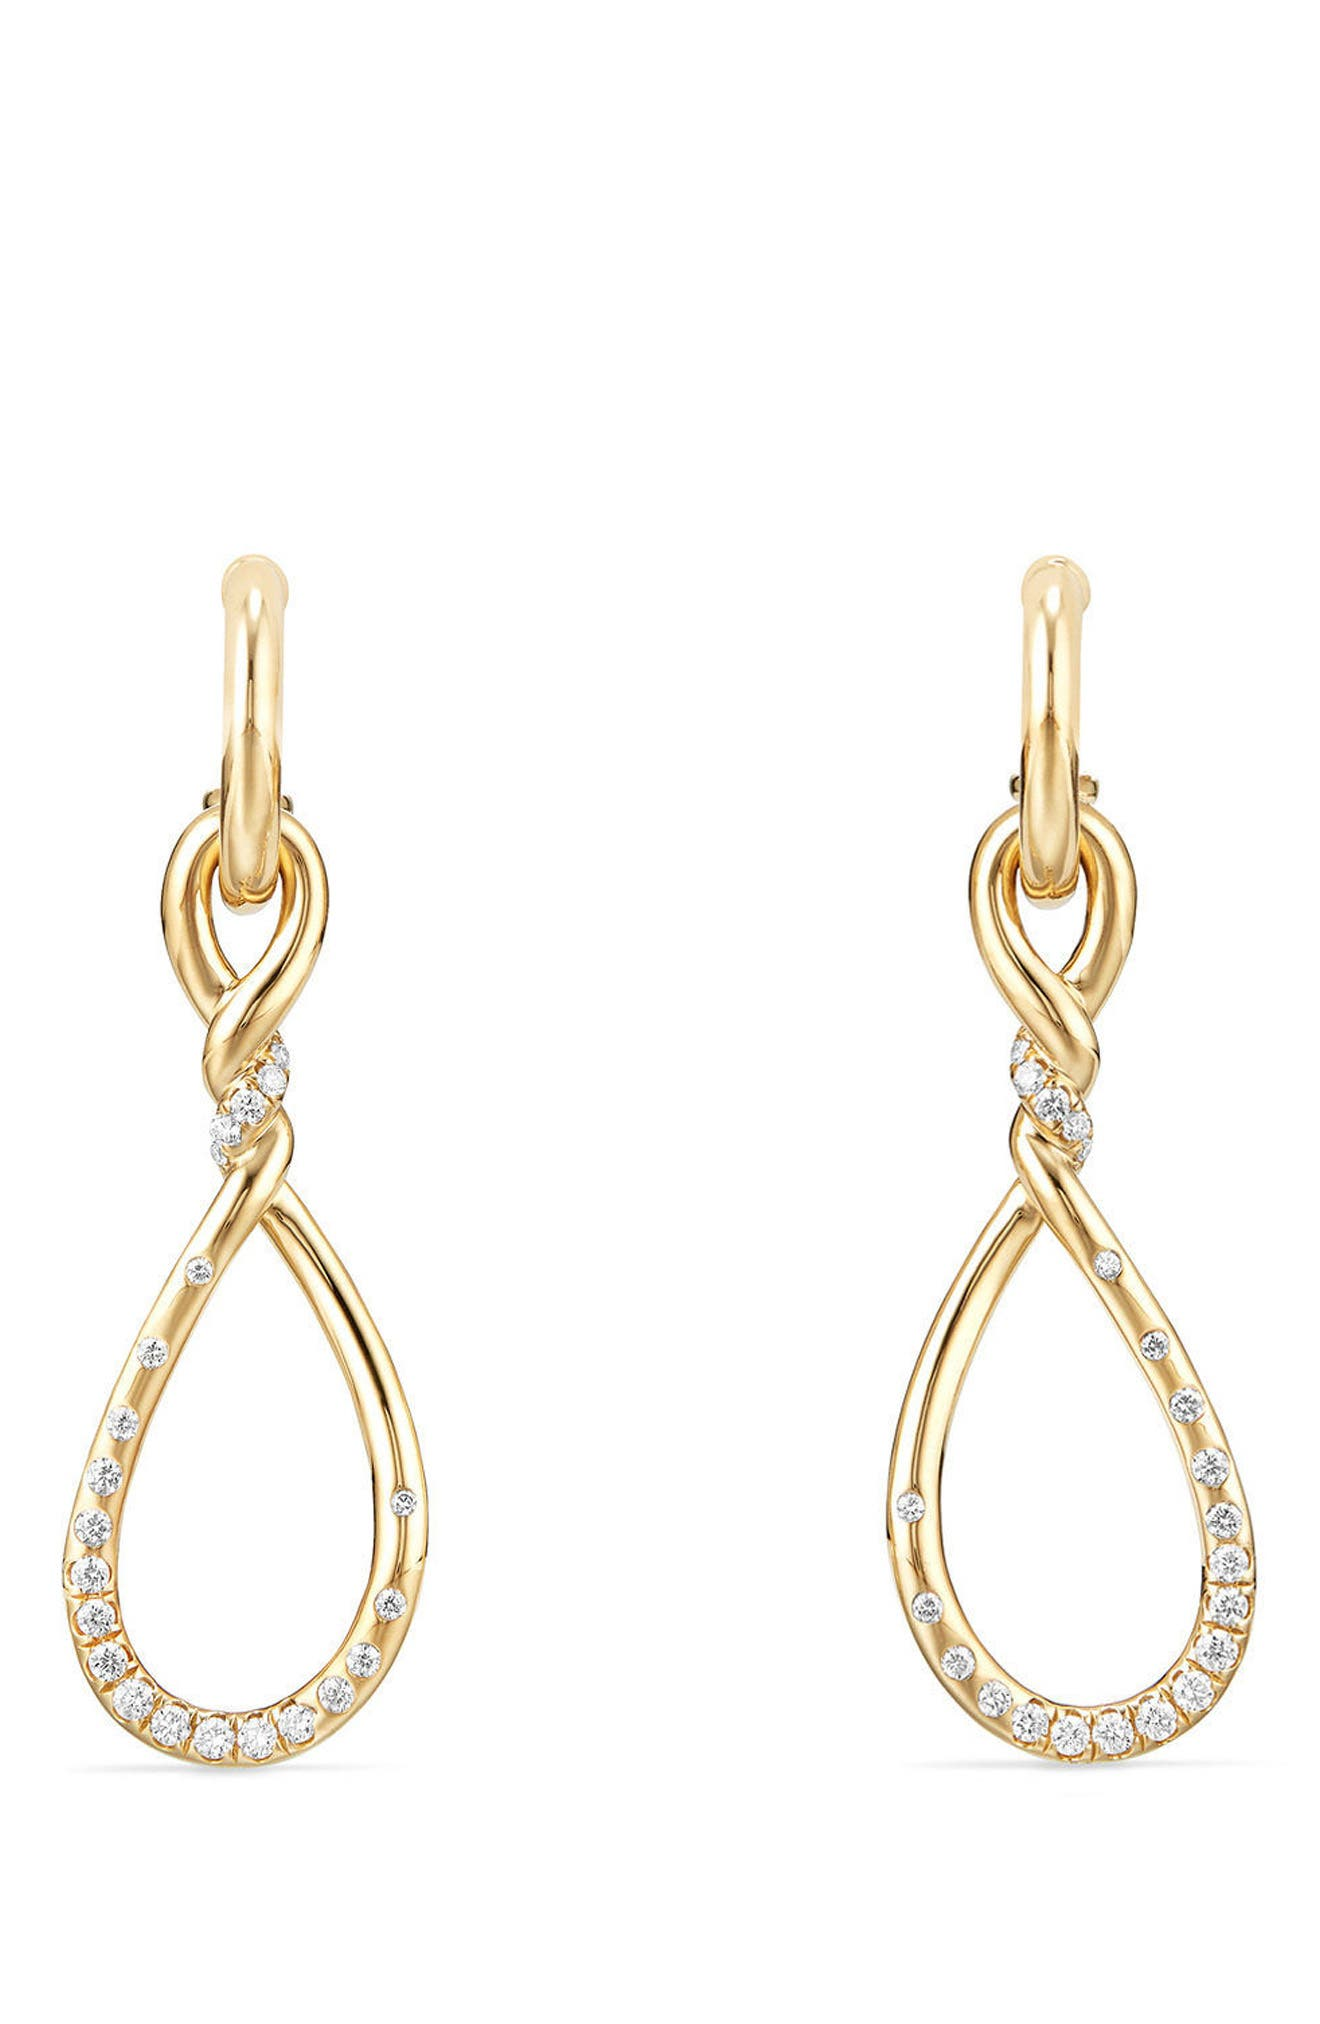 Continuance Medium Drop Earrings with Diamonds in 18K Gold,                         Main,                         color, 710